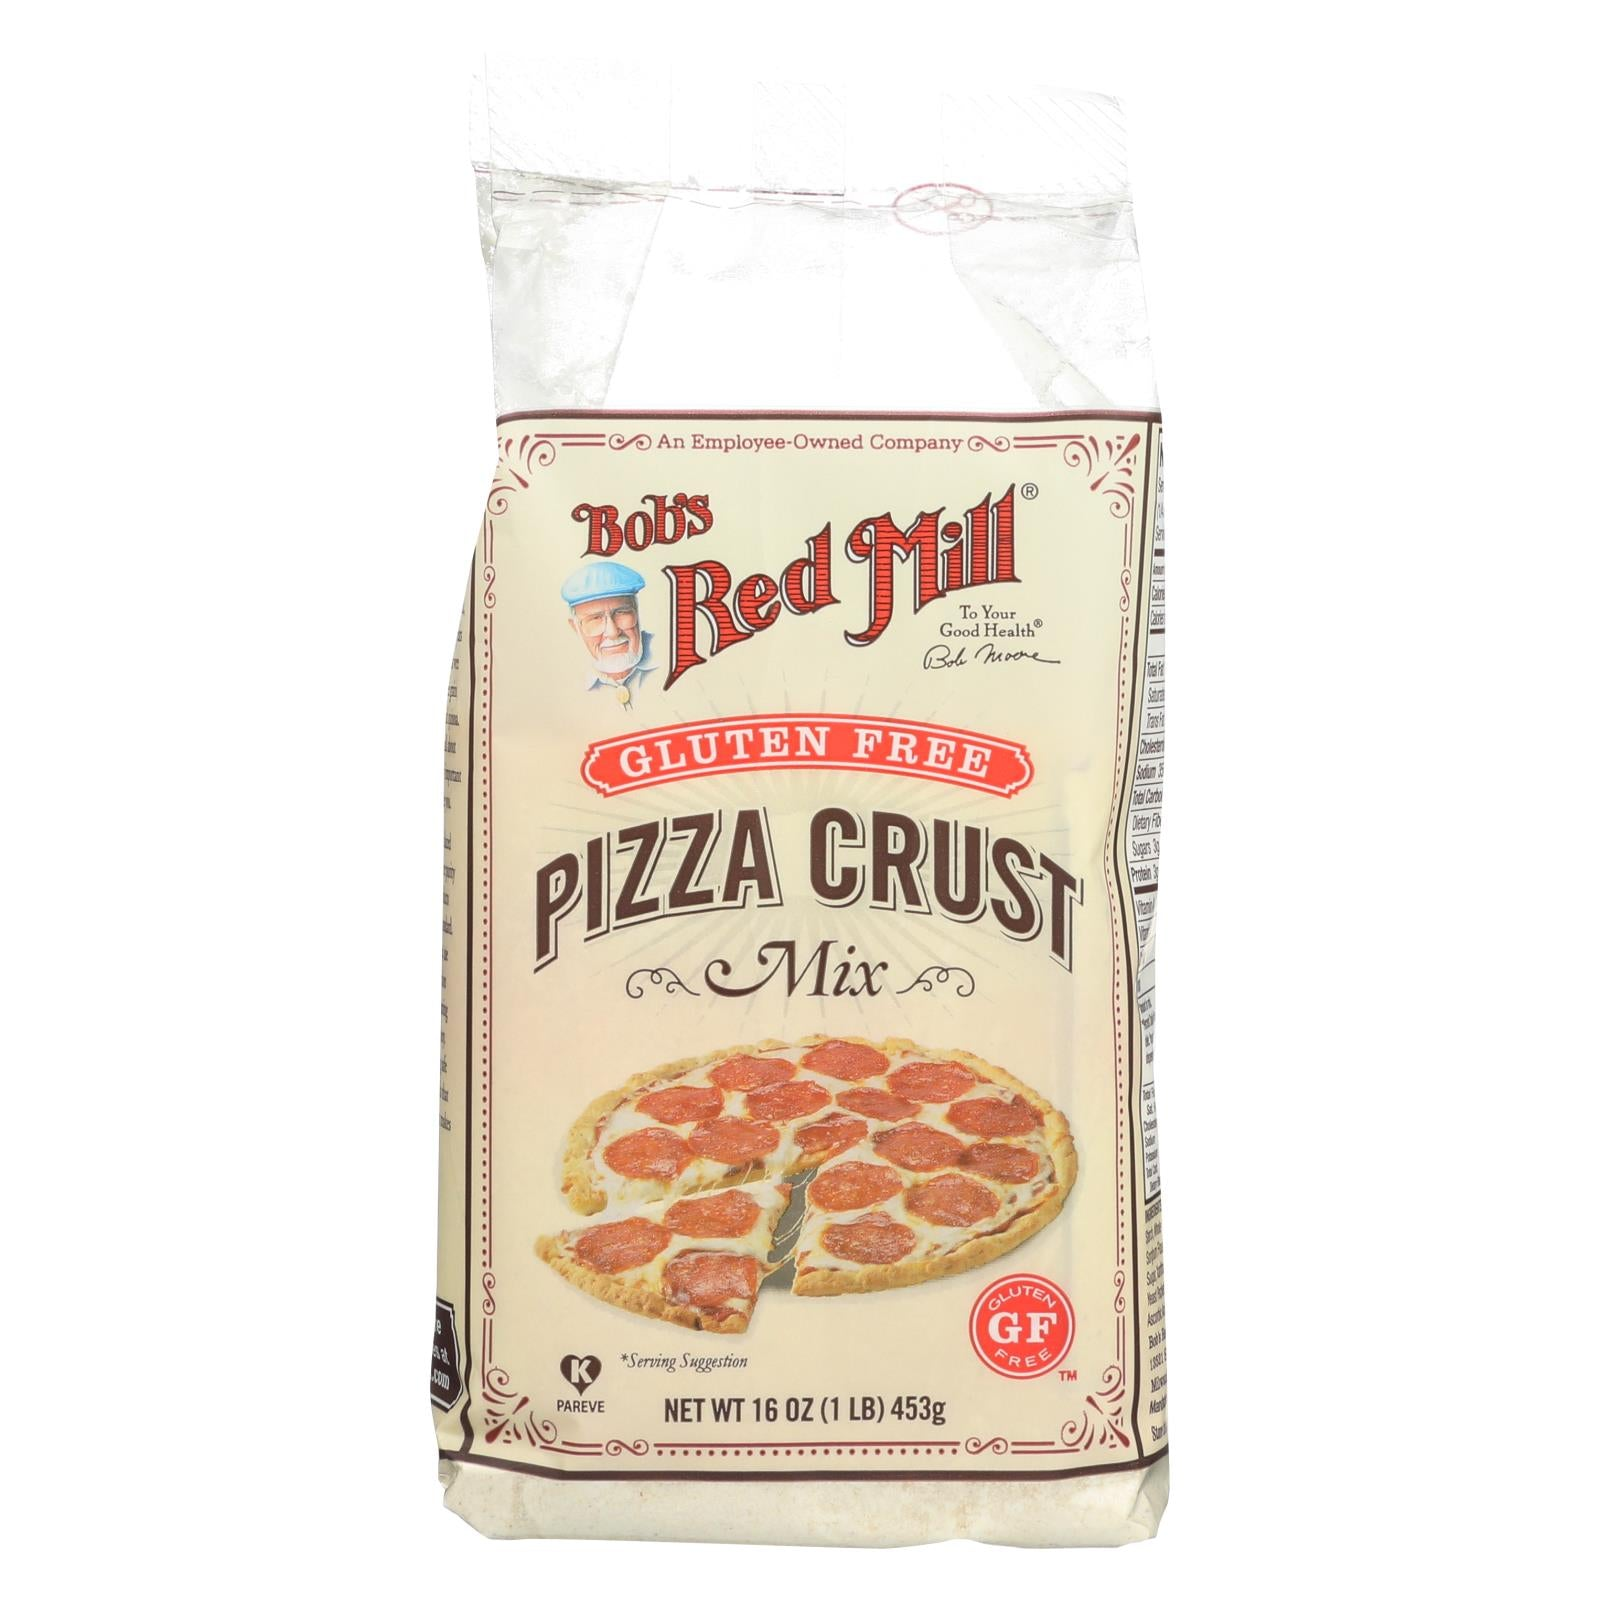 Bob's Red Mill Gluten Free Pizza Crust Mix - 16 Oz - Case Of 4 HG0443143